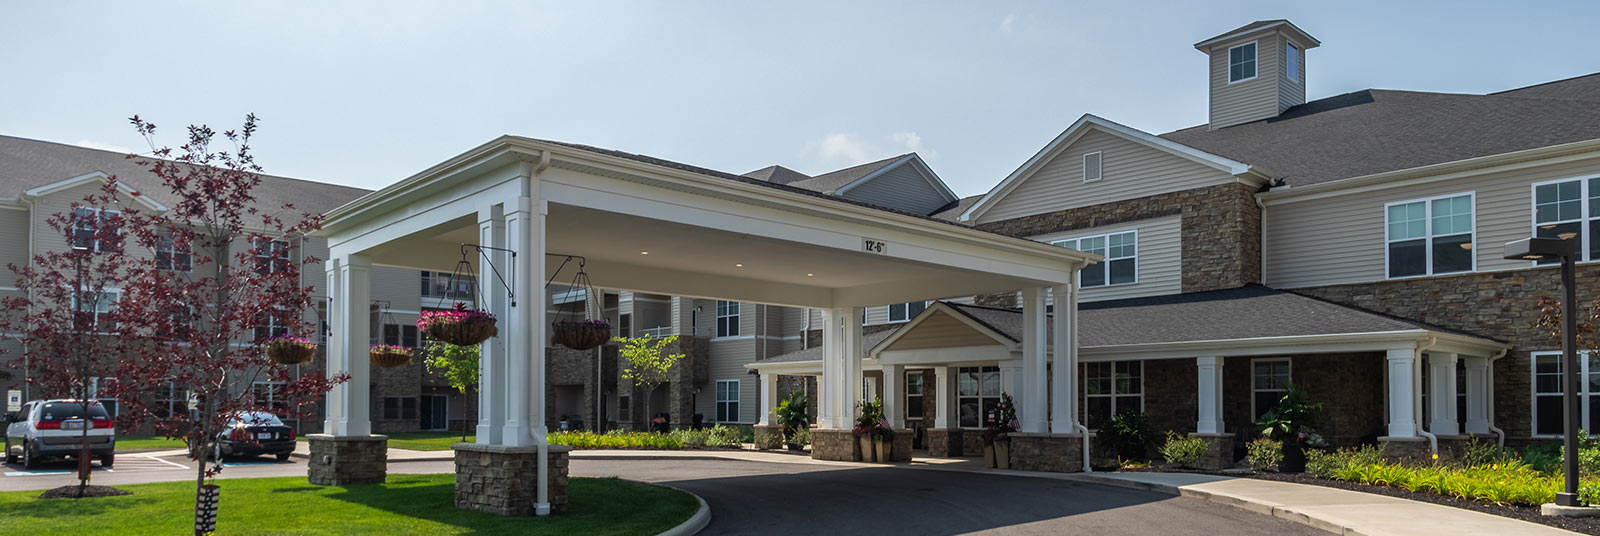 The large porte cochere at the entrance of the Story Point facility in Grove City, Ohio